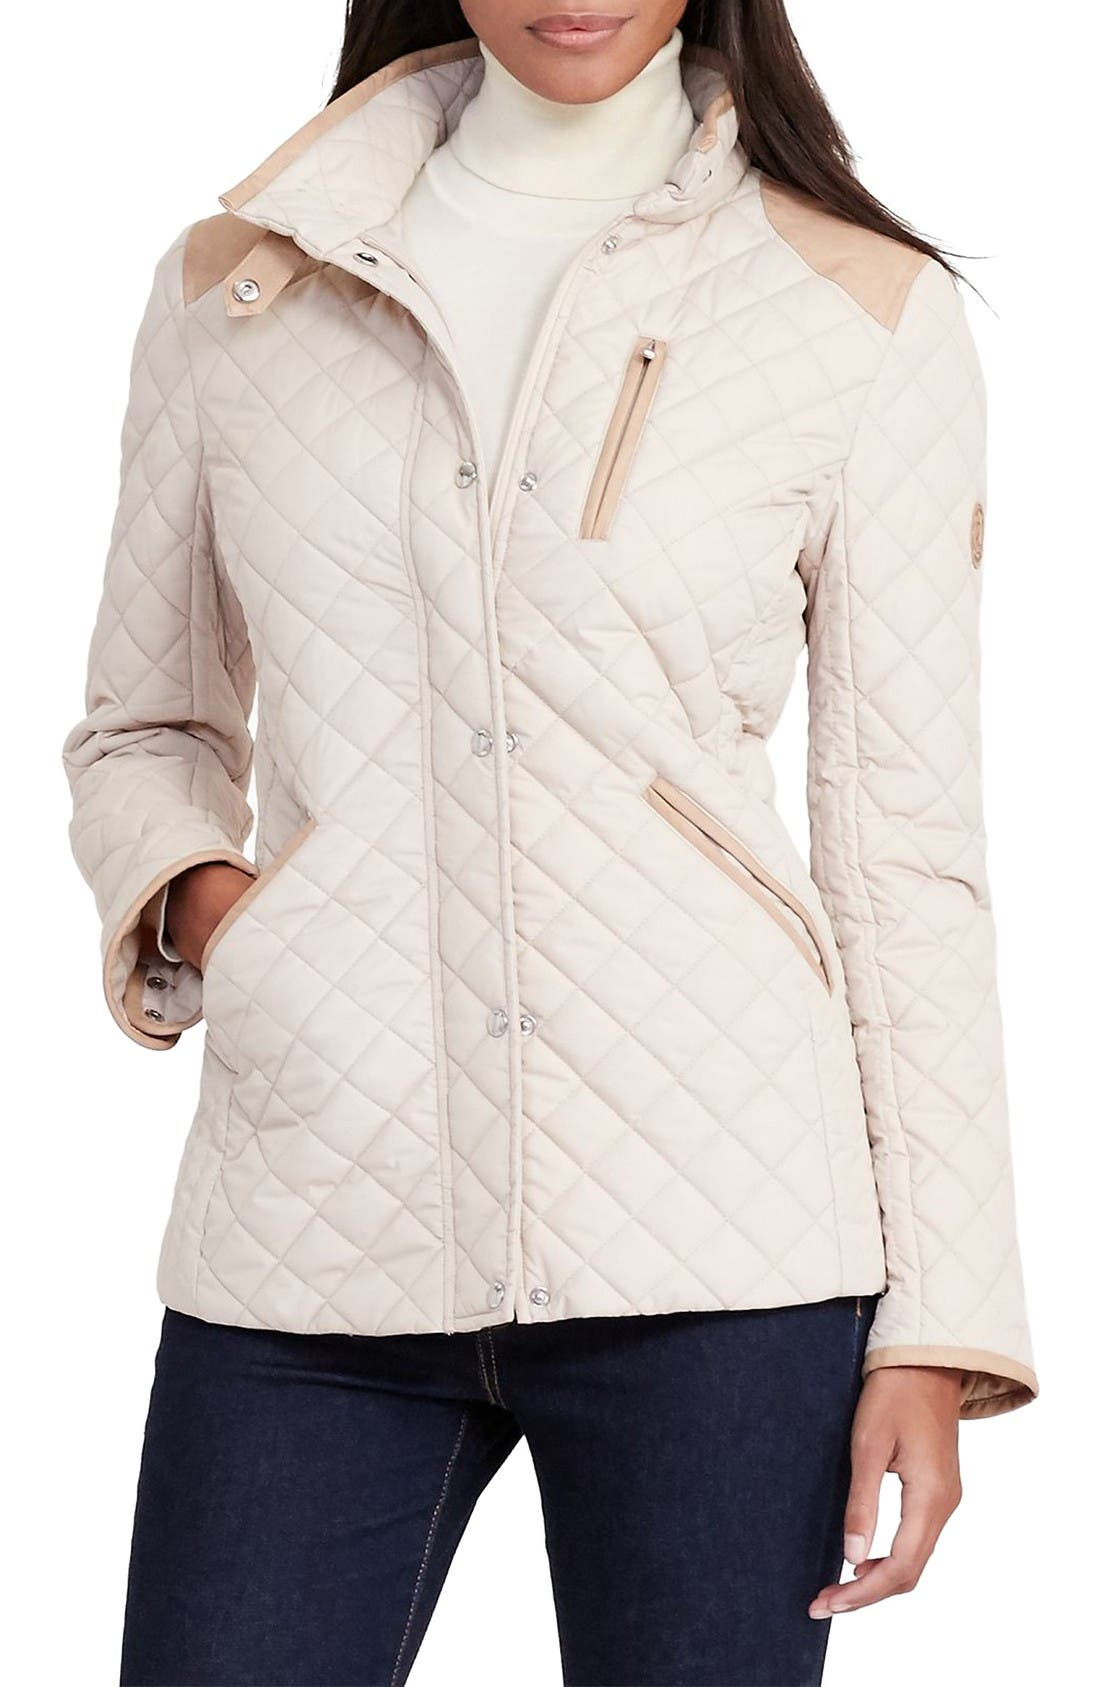 LAUREN RALPH LAUREN Faux Leather Trim Quilted Jacket